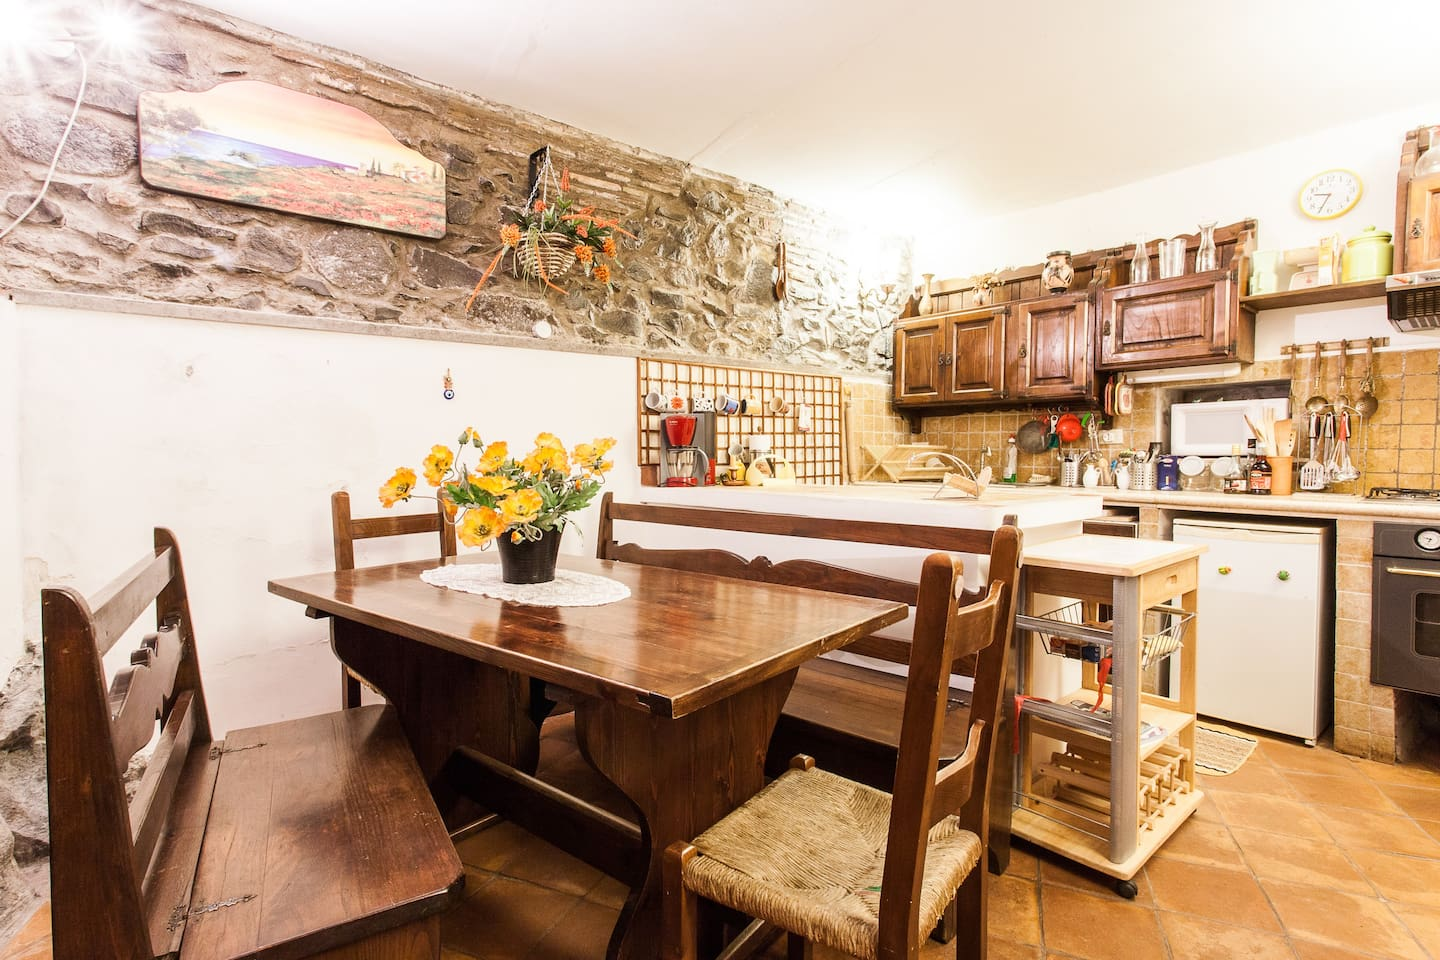 Tuscan style fully equipped rustic kitchen and dining area